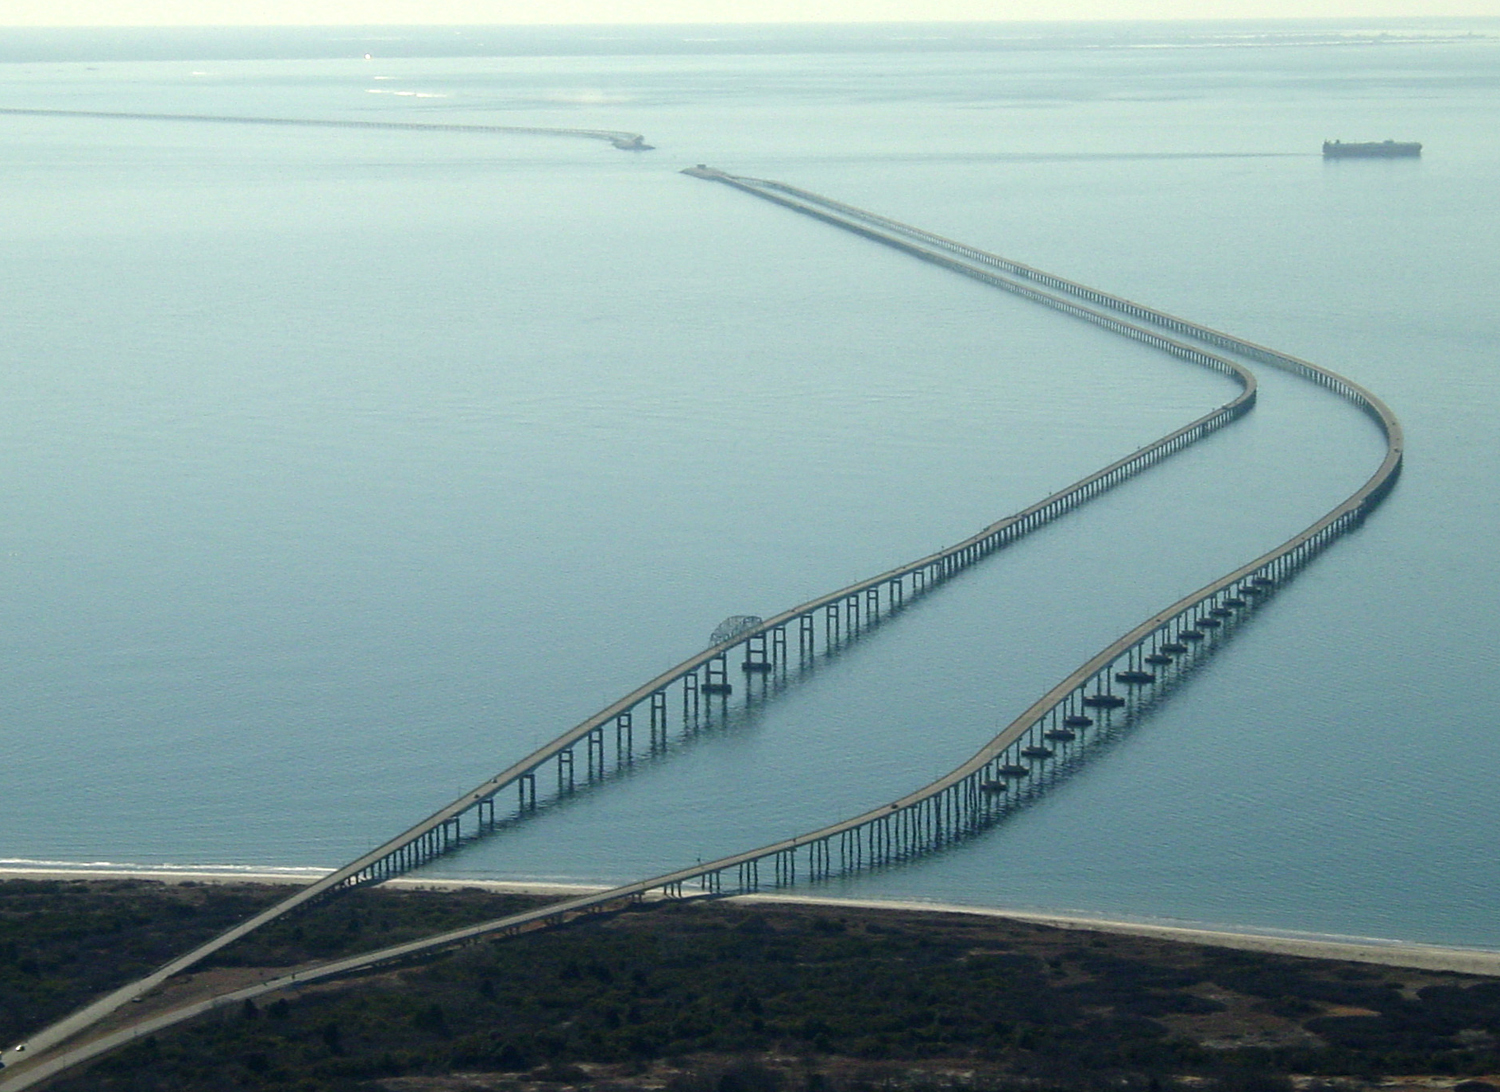 chesapeake bay bridge tunnel virginia